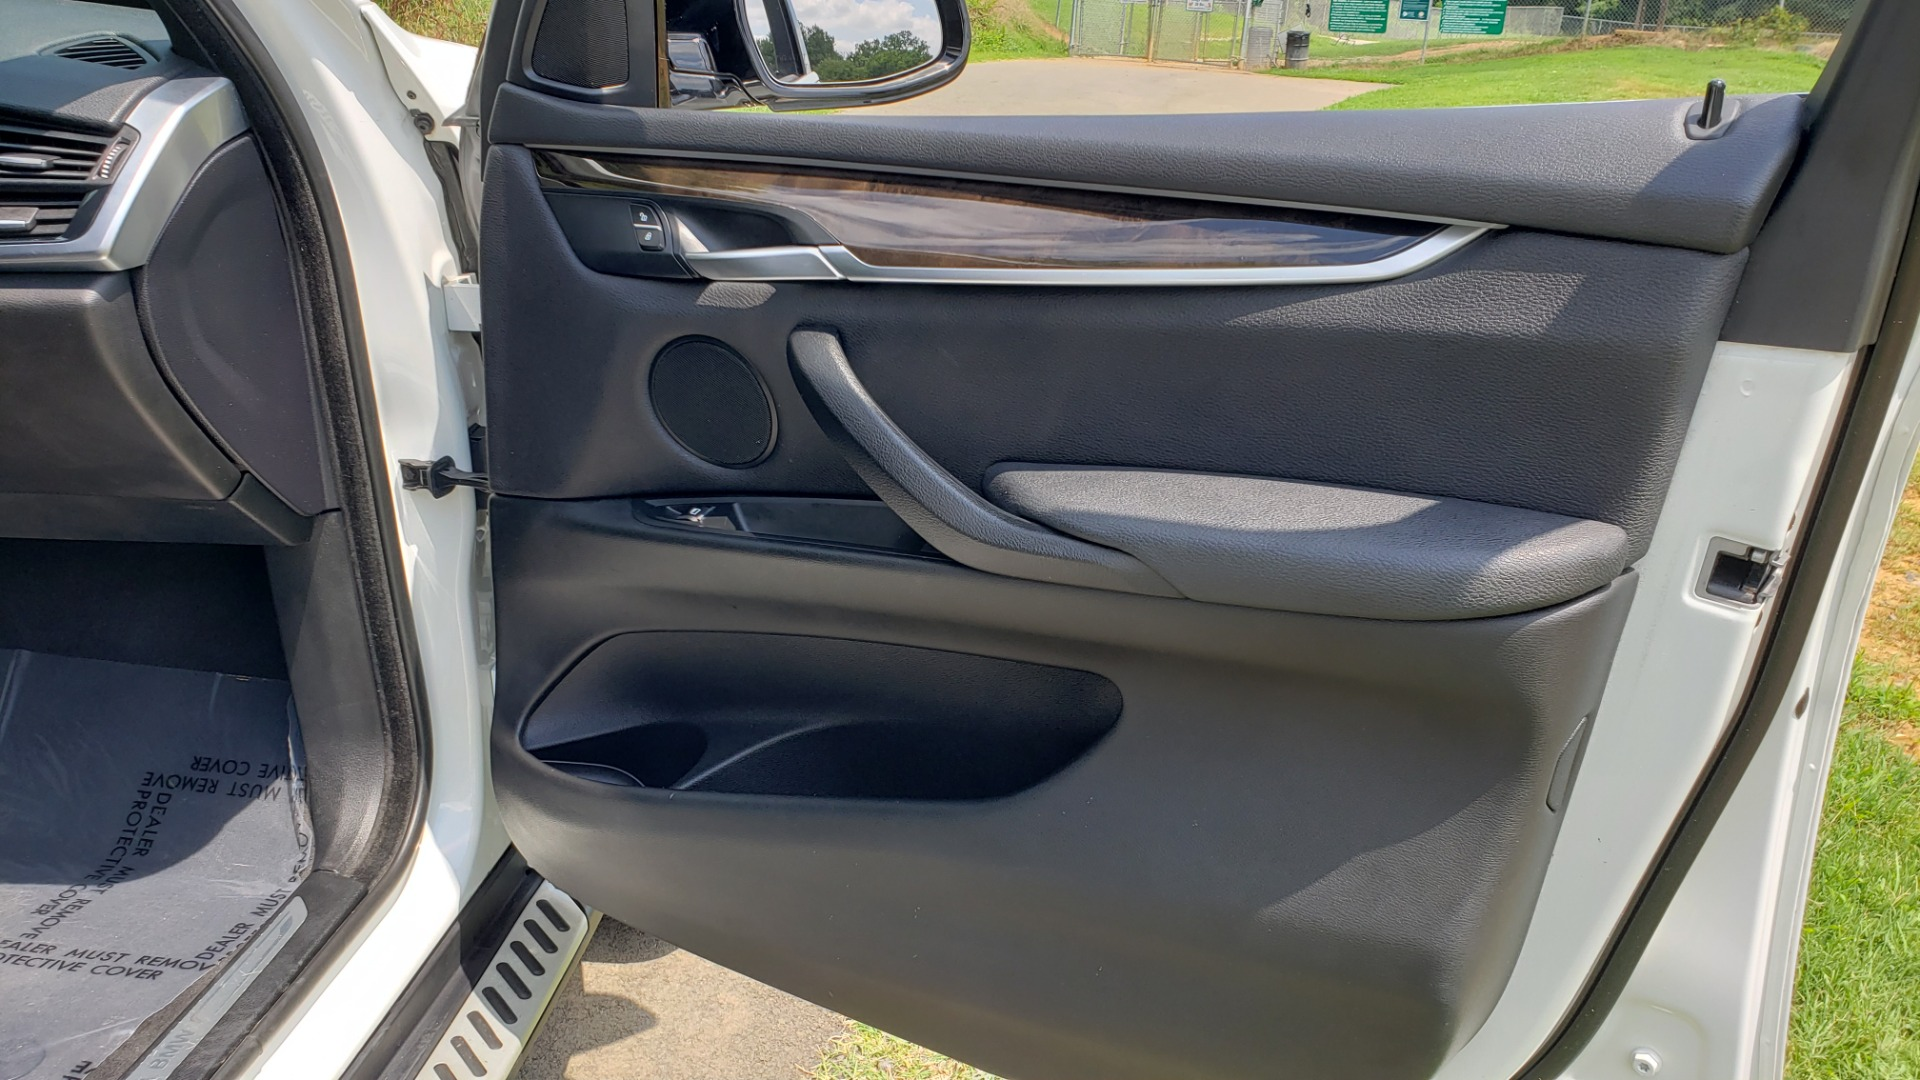 Used 2017 BMW X5 XDRIVE35I / NAV / SUNROOF / RUNNING BOARDS / REARVIEW for sale $33,995 at Formula Imports in Charlotte NC 28227 69